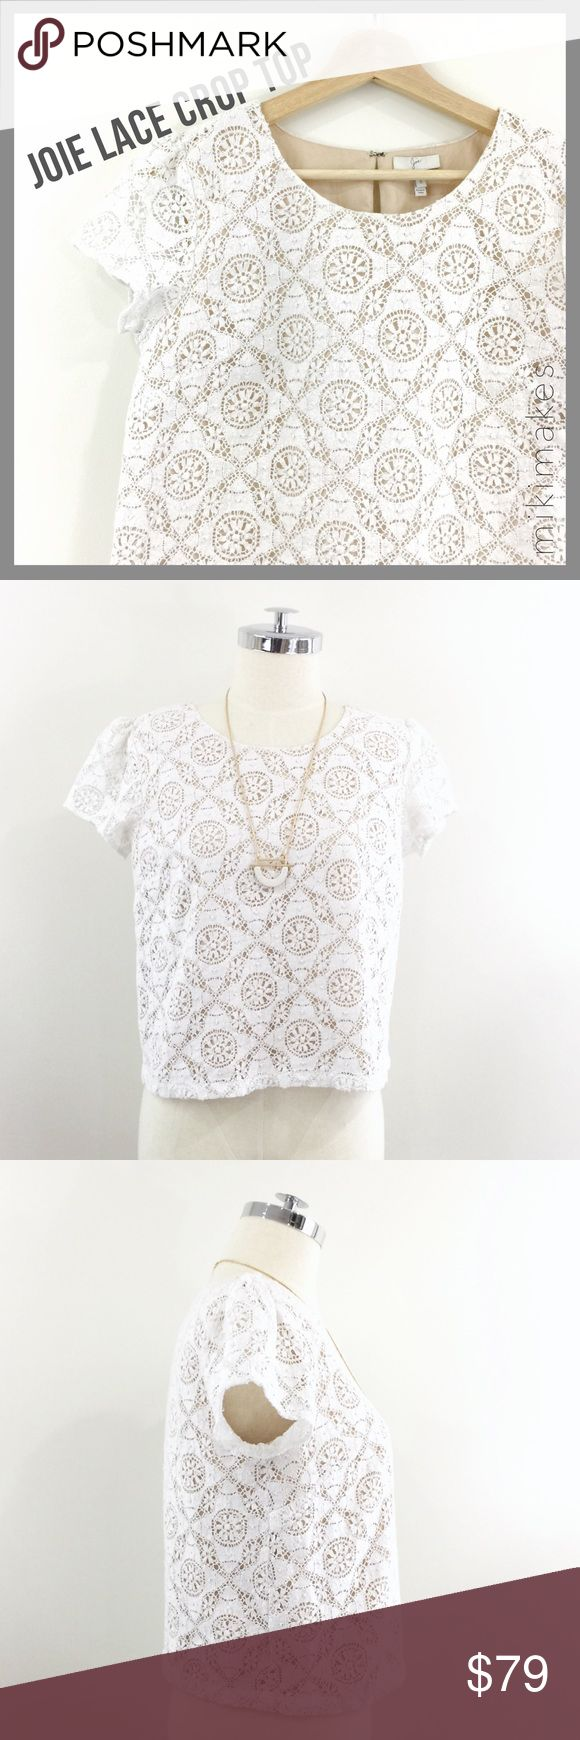 "JOIE • cream lace crop top cap sleeve • cute and simple boxy cream lace top from Joie • cap sleeve (not lined) • bodice is fully lined in nude cotton • round neck • falls around the waist  100% cotton Hand wash only  ✂️  Bust = 37"" ✂️  Waist = 14"" ✂️  Length = 20""  • sorry no trades • please feel free to ask any questions  ❤️,  @mikimakes  053017.8.79 Joie Tops Blouses"